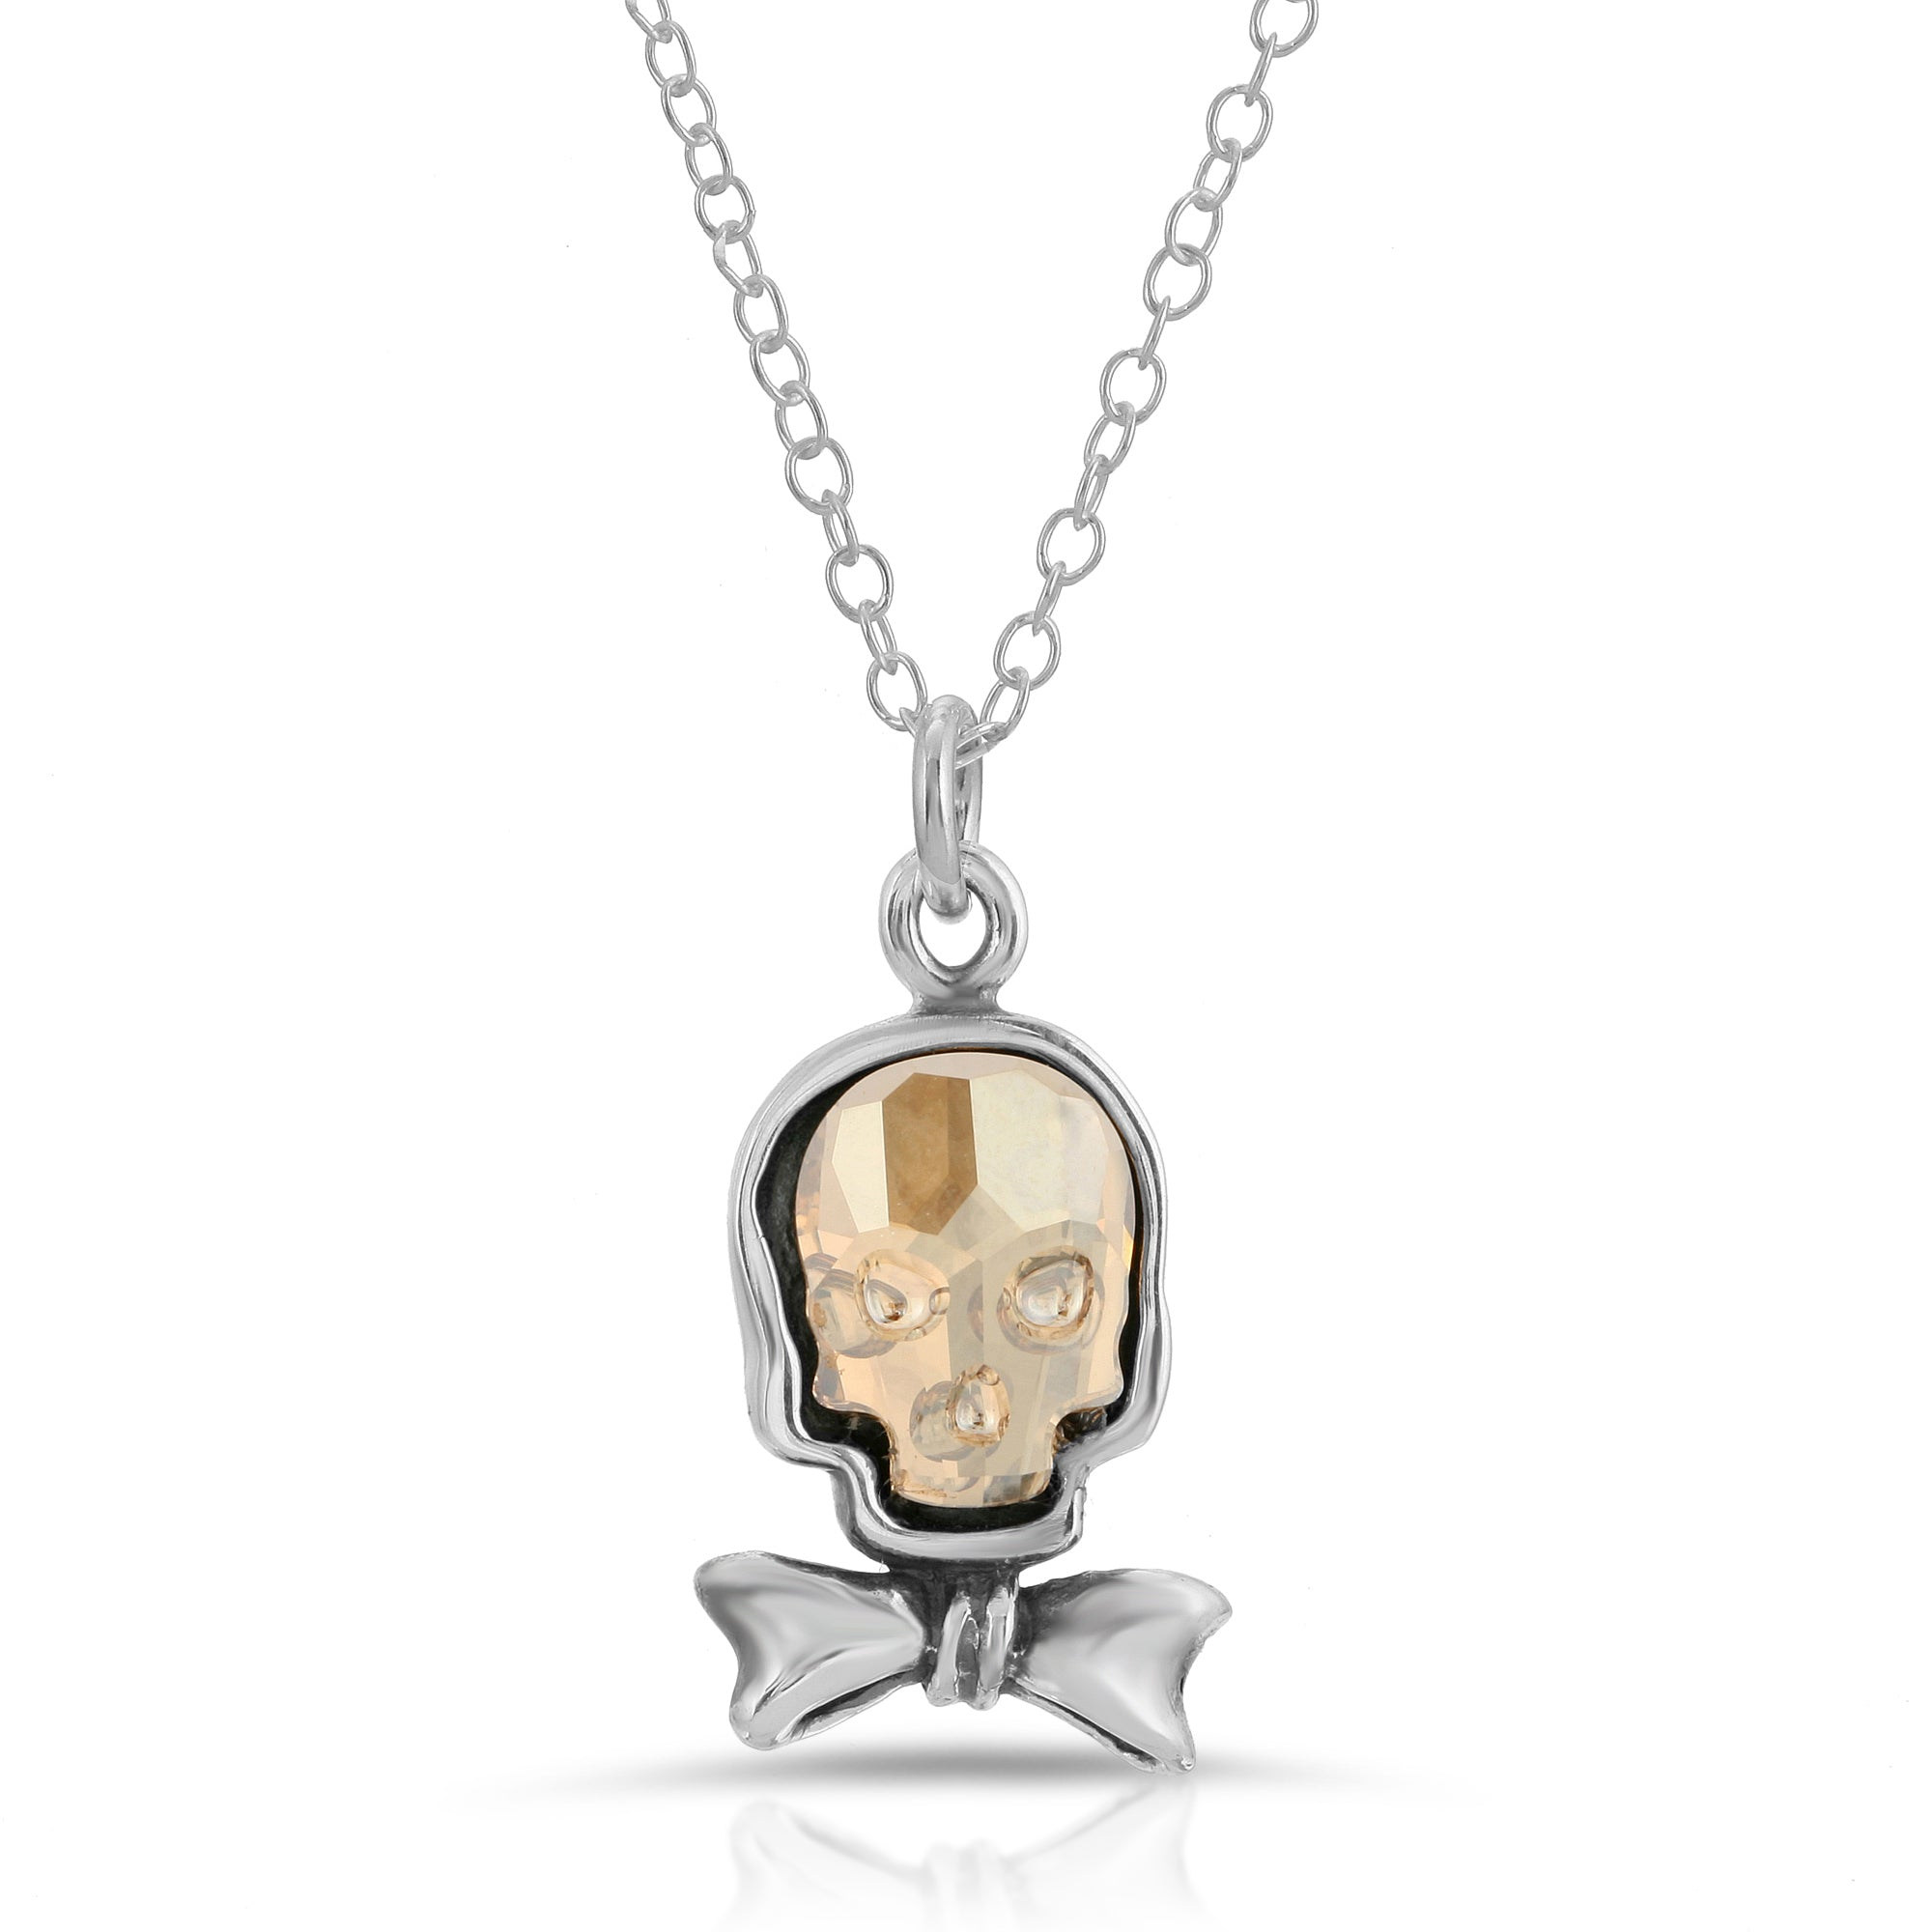 The W Brothers Clear Gold Bow-Tie Swarovski Skull Necklace Pendant crafted in premium Grade A 925 Sterling Silver for men and female fashion accessory. Perfect for a fashionable statement necklace for halloween jewelry.